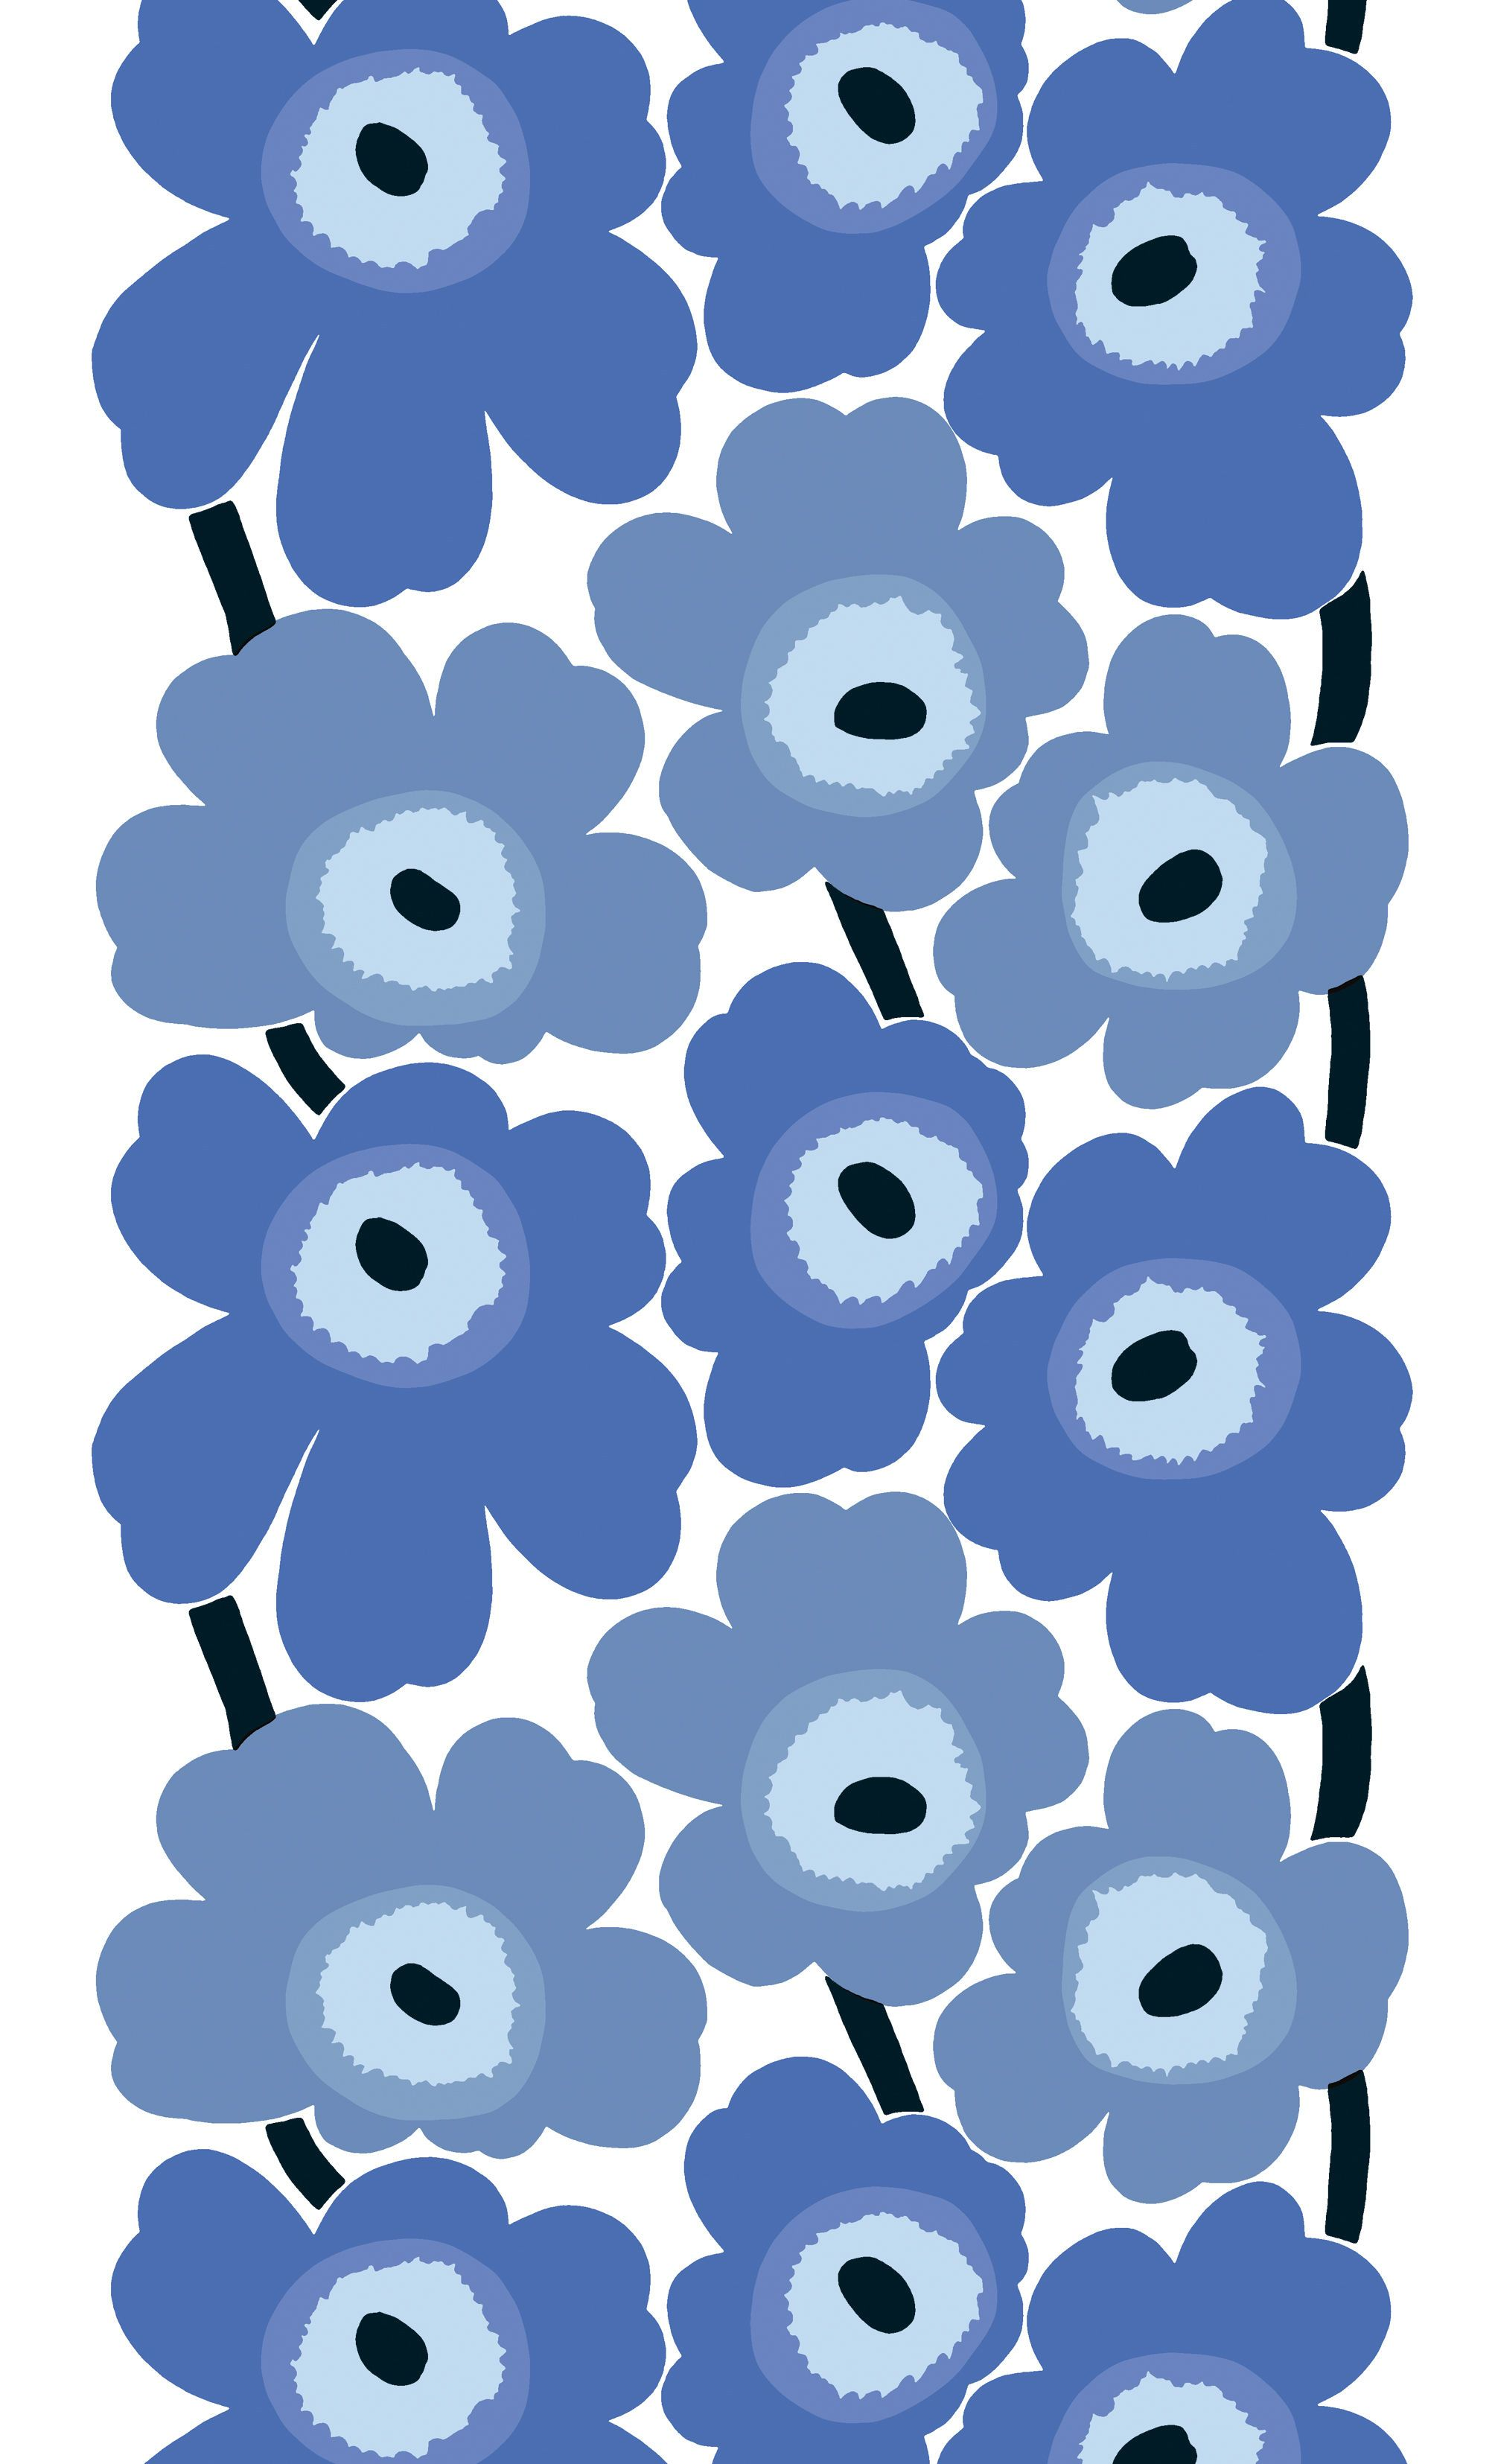 unikko poppy design maija isola for marimekko